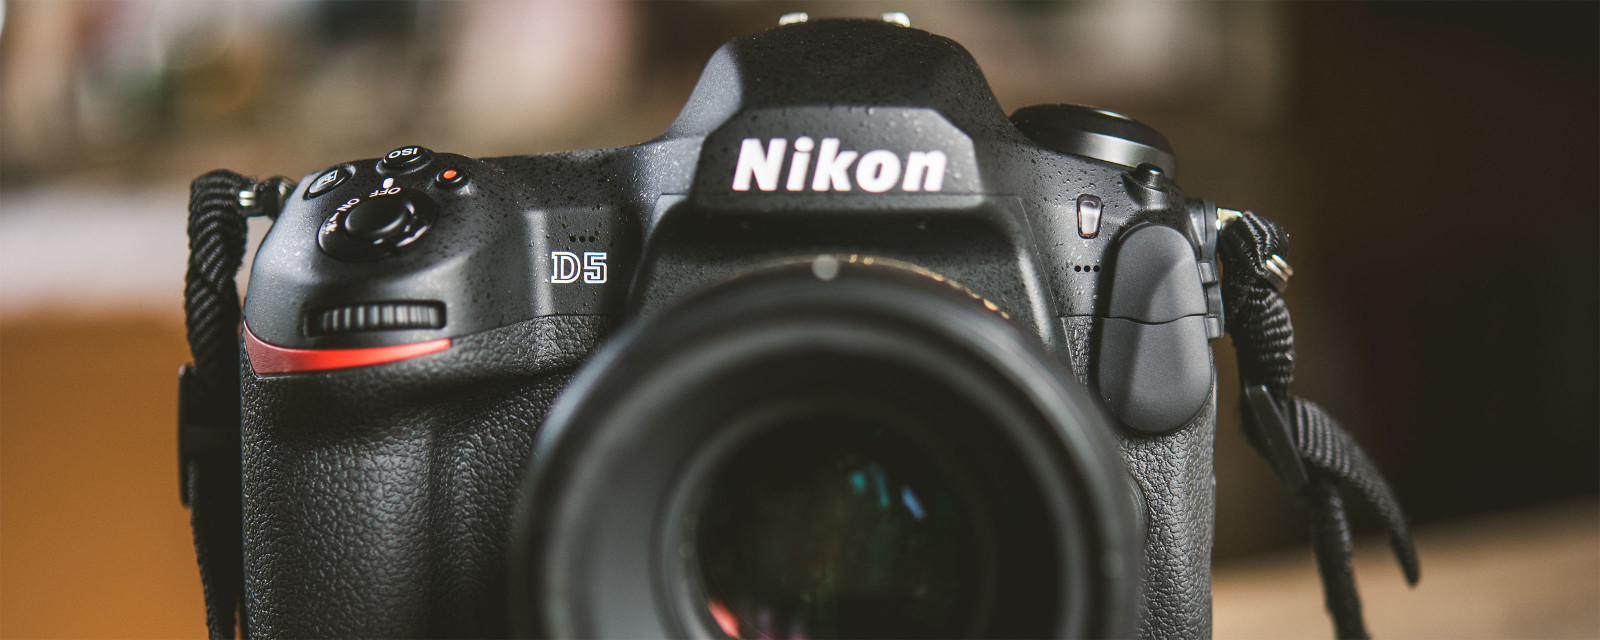 GEAR REVIEW // Nikon D5 Review